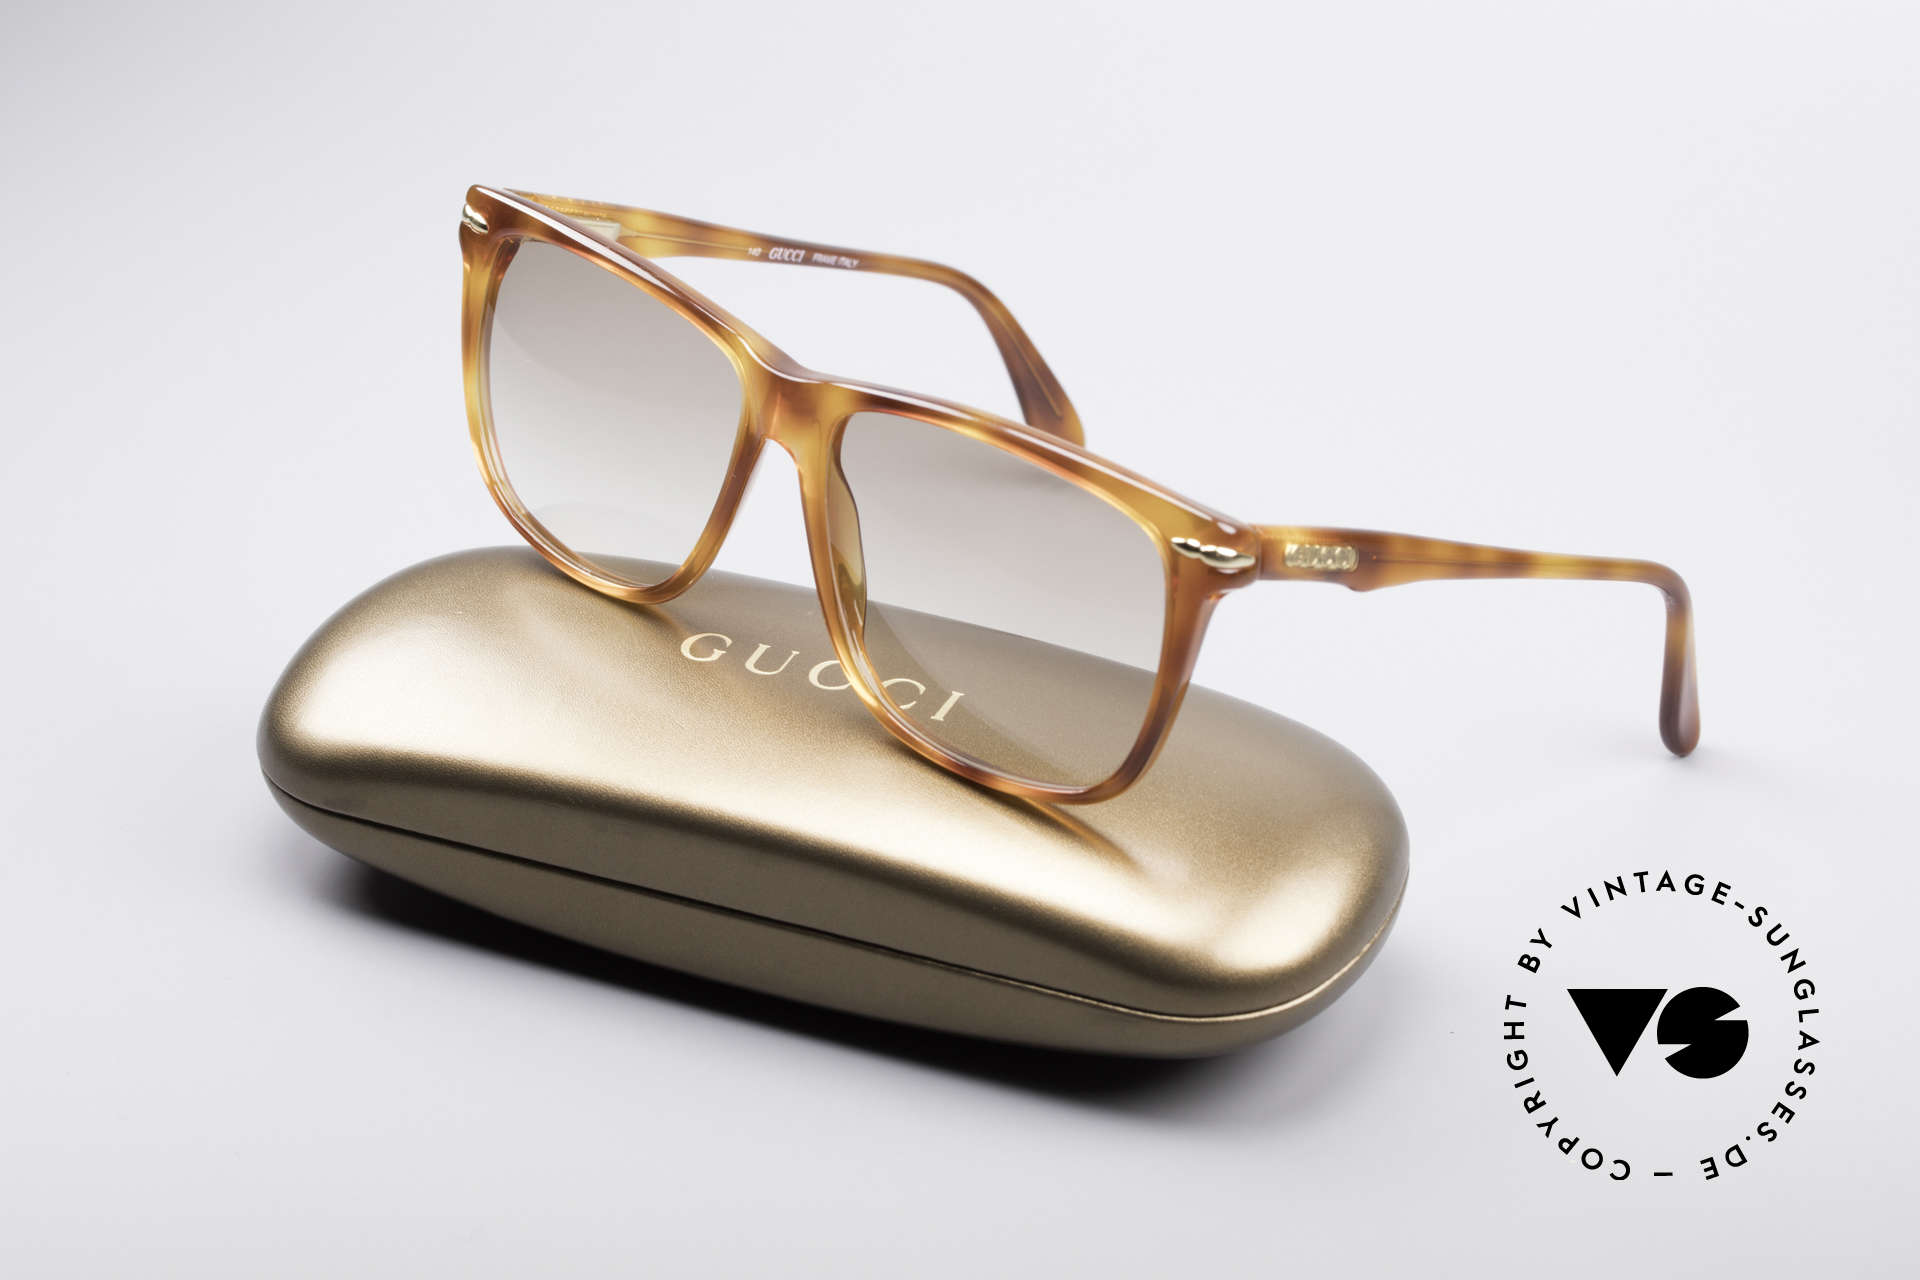 Gucci 1115 Classic 80's Sunglasses, light brown tinted lenses (also wearable at night), Made for Men